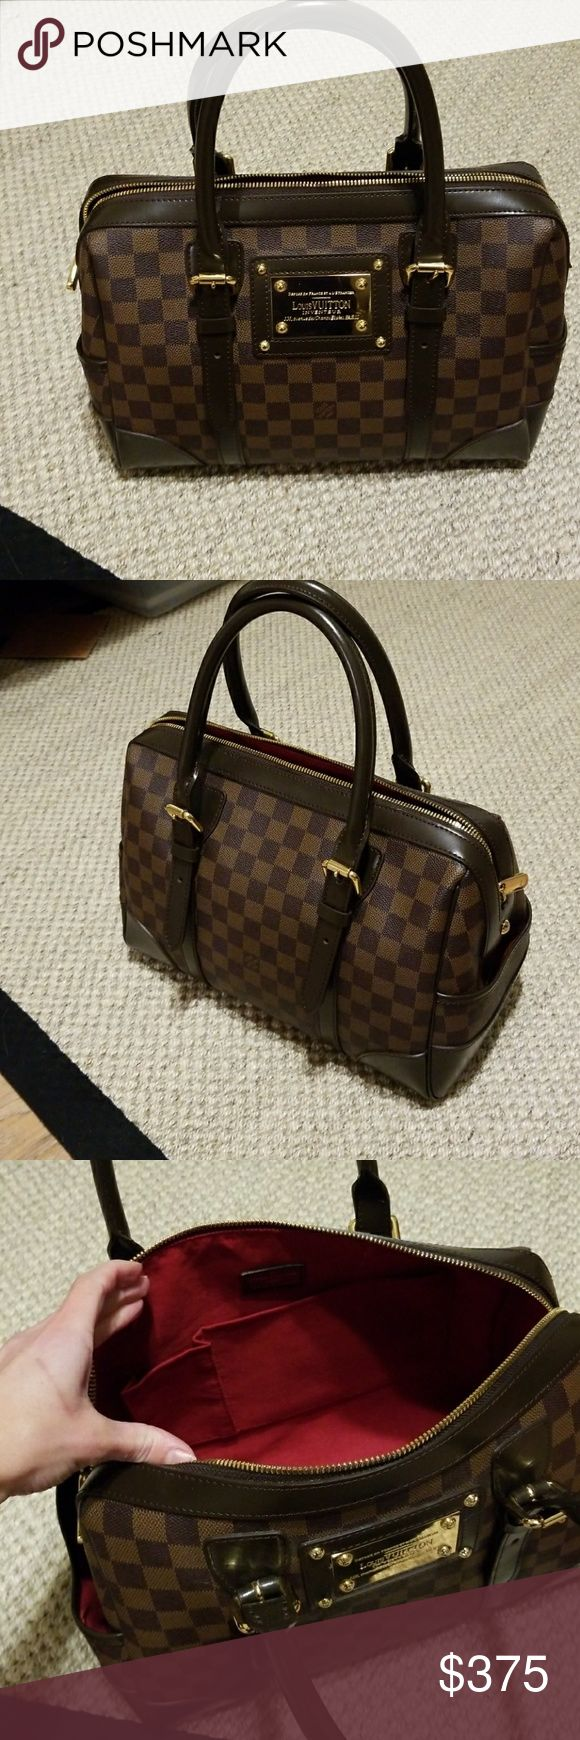 Lv berkley style bag Price reflects authenticity... new condition used once as a carry on. Same dimensions as the original. Adjustable handles. LV Bags Satchels